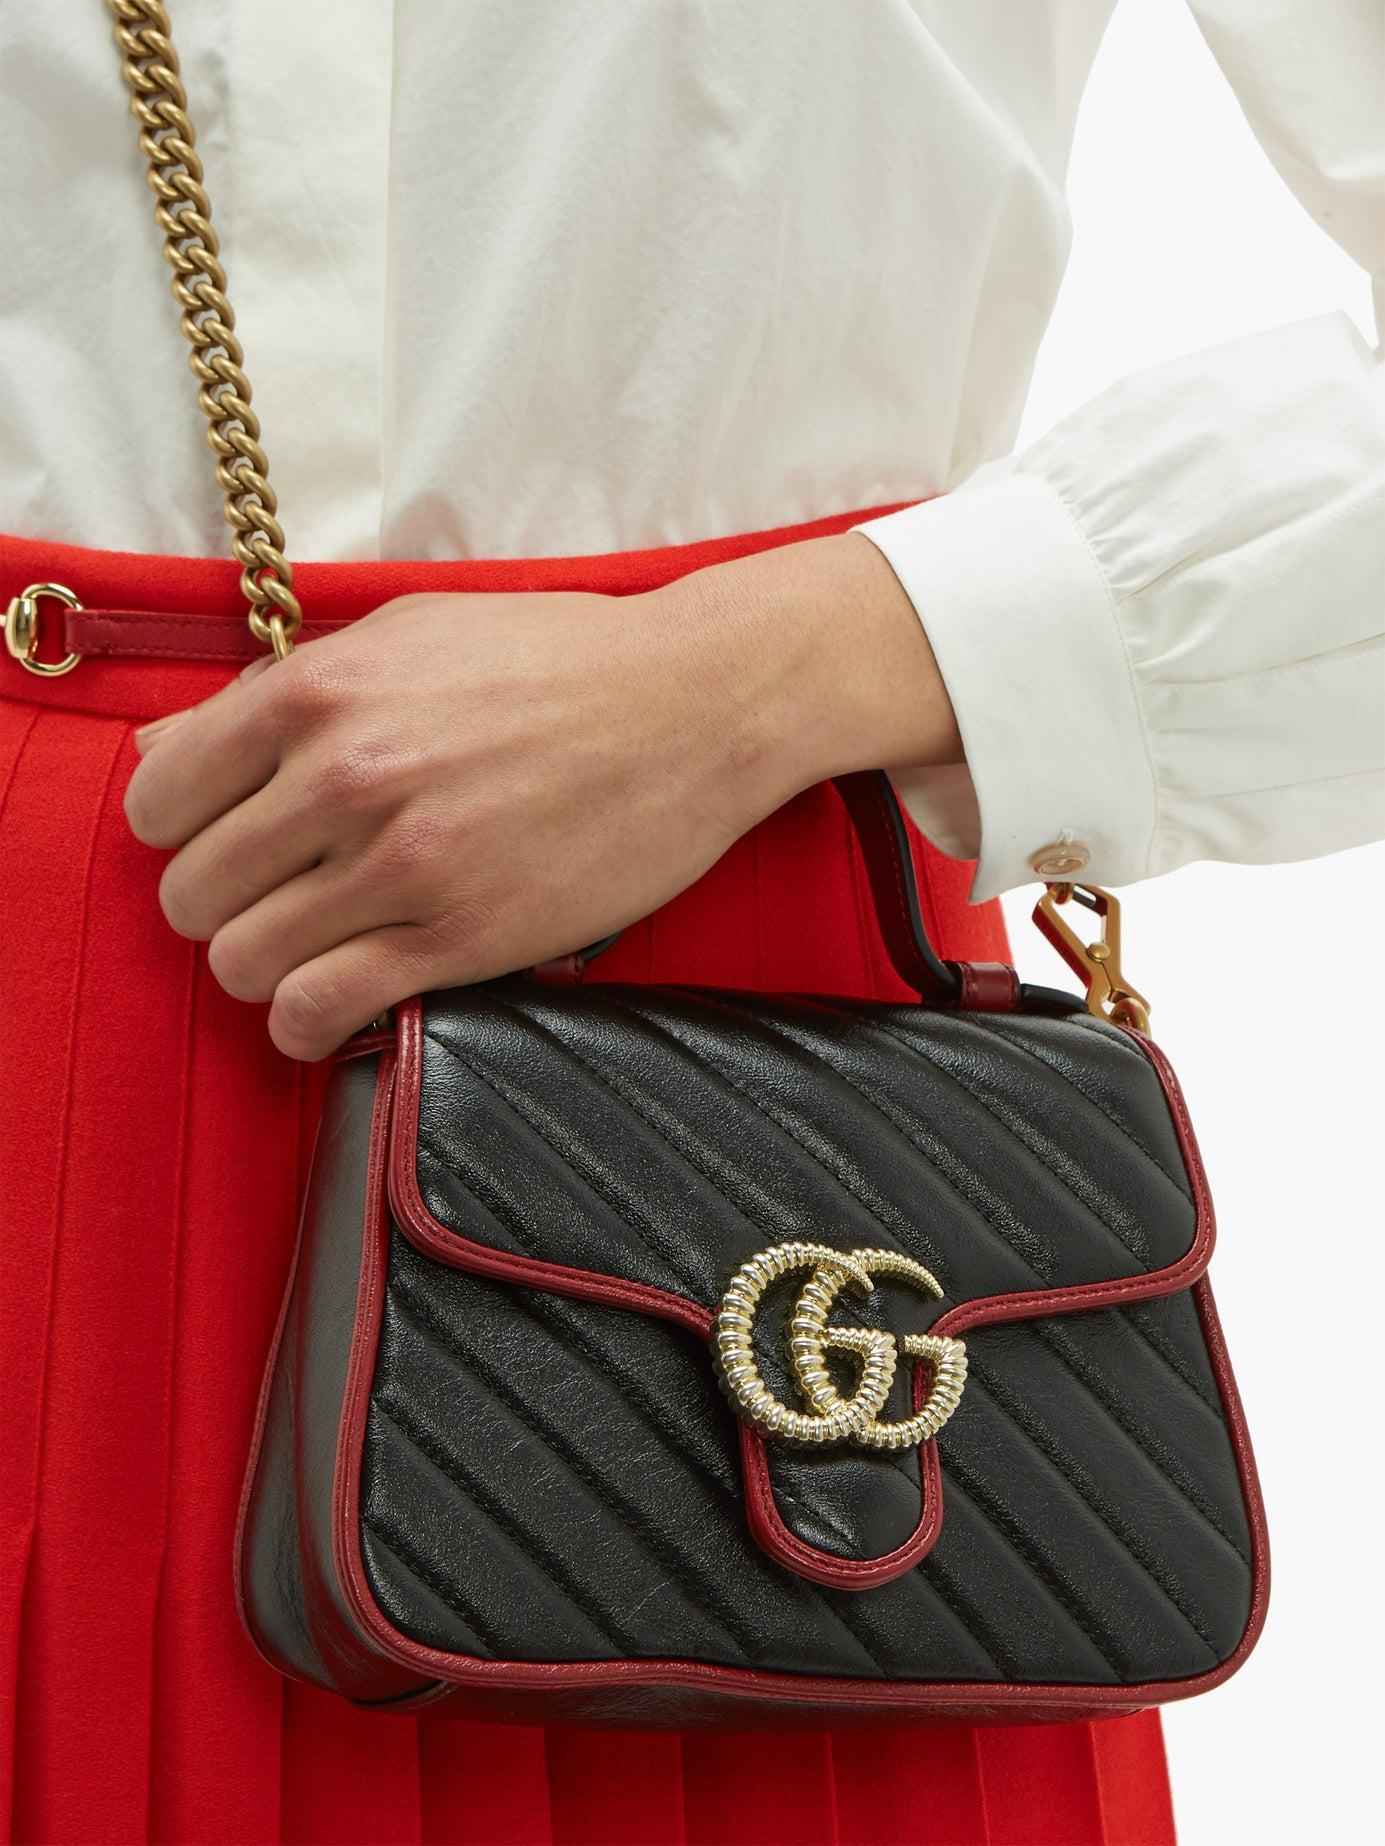 689d49daa Gucci - Black Gg Marmont Mini Quilted Leather Cross Body Bag - Lyst. View  fullscreen